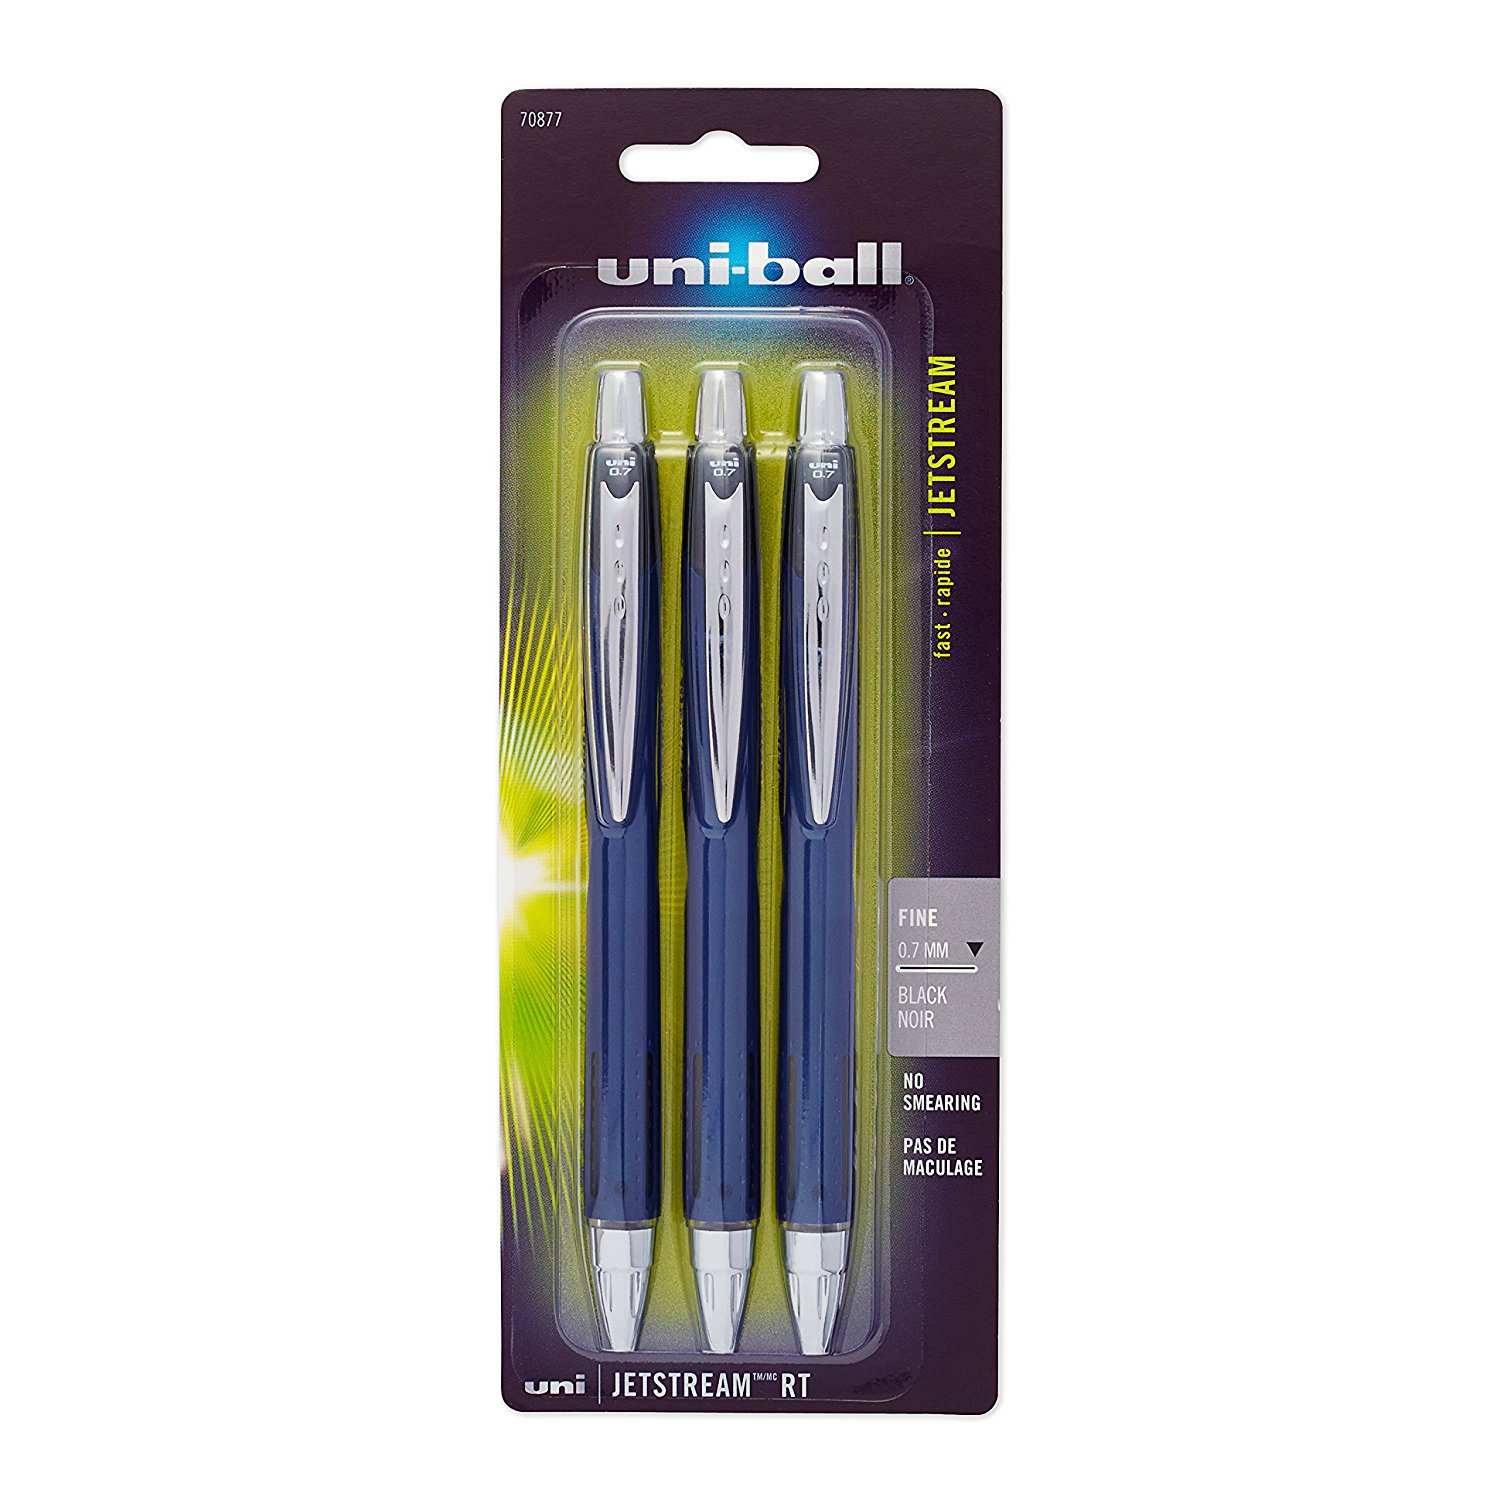 The [Uni-Ball Jetstream](https://www.amazon.com/dp/B002FSZP5A?tag=toolstoysdeals-20) is probably the best ball point pen you can buy — and now it's even cheaper.